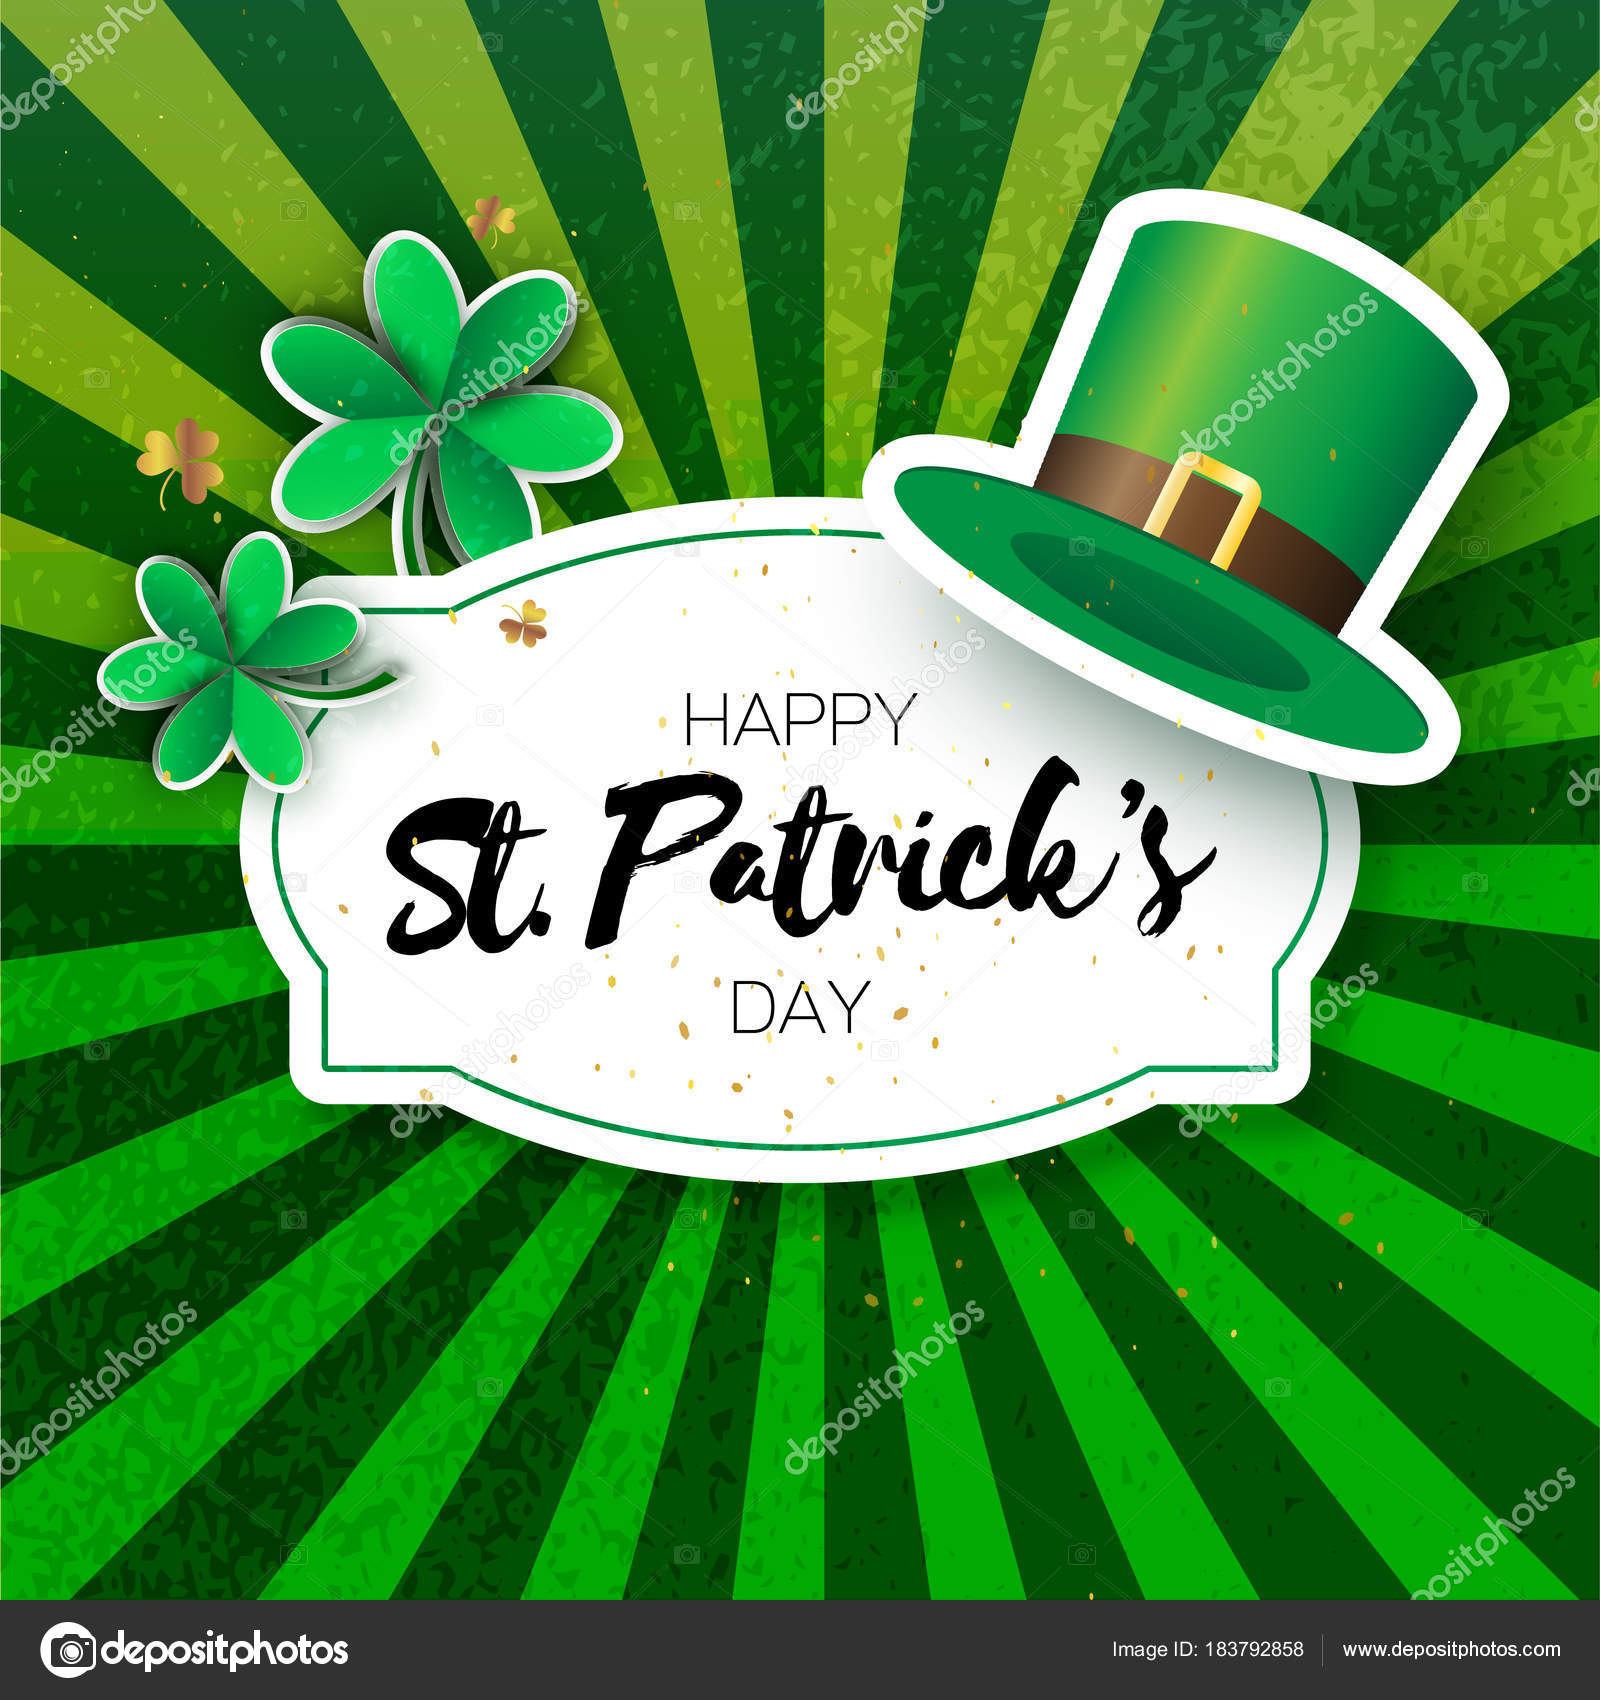 Happy St Patricks Day Greetings Card With Clover And Hat Origami